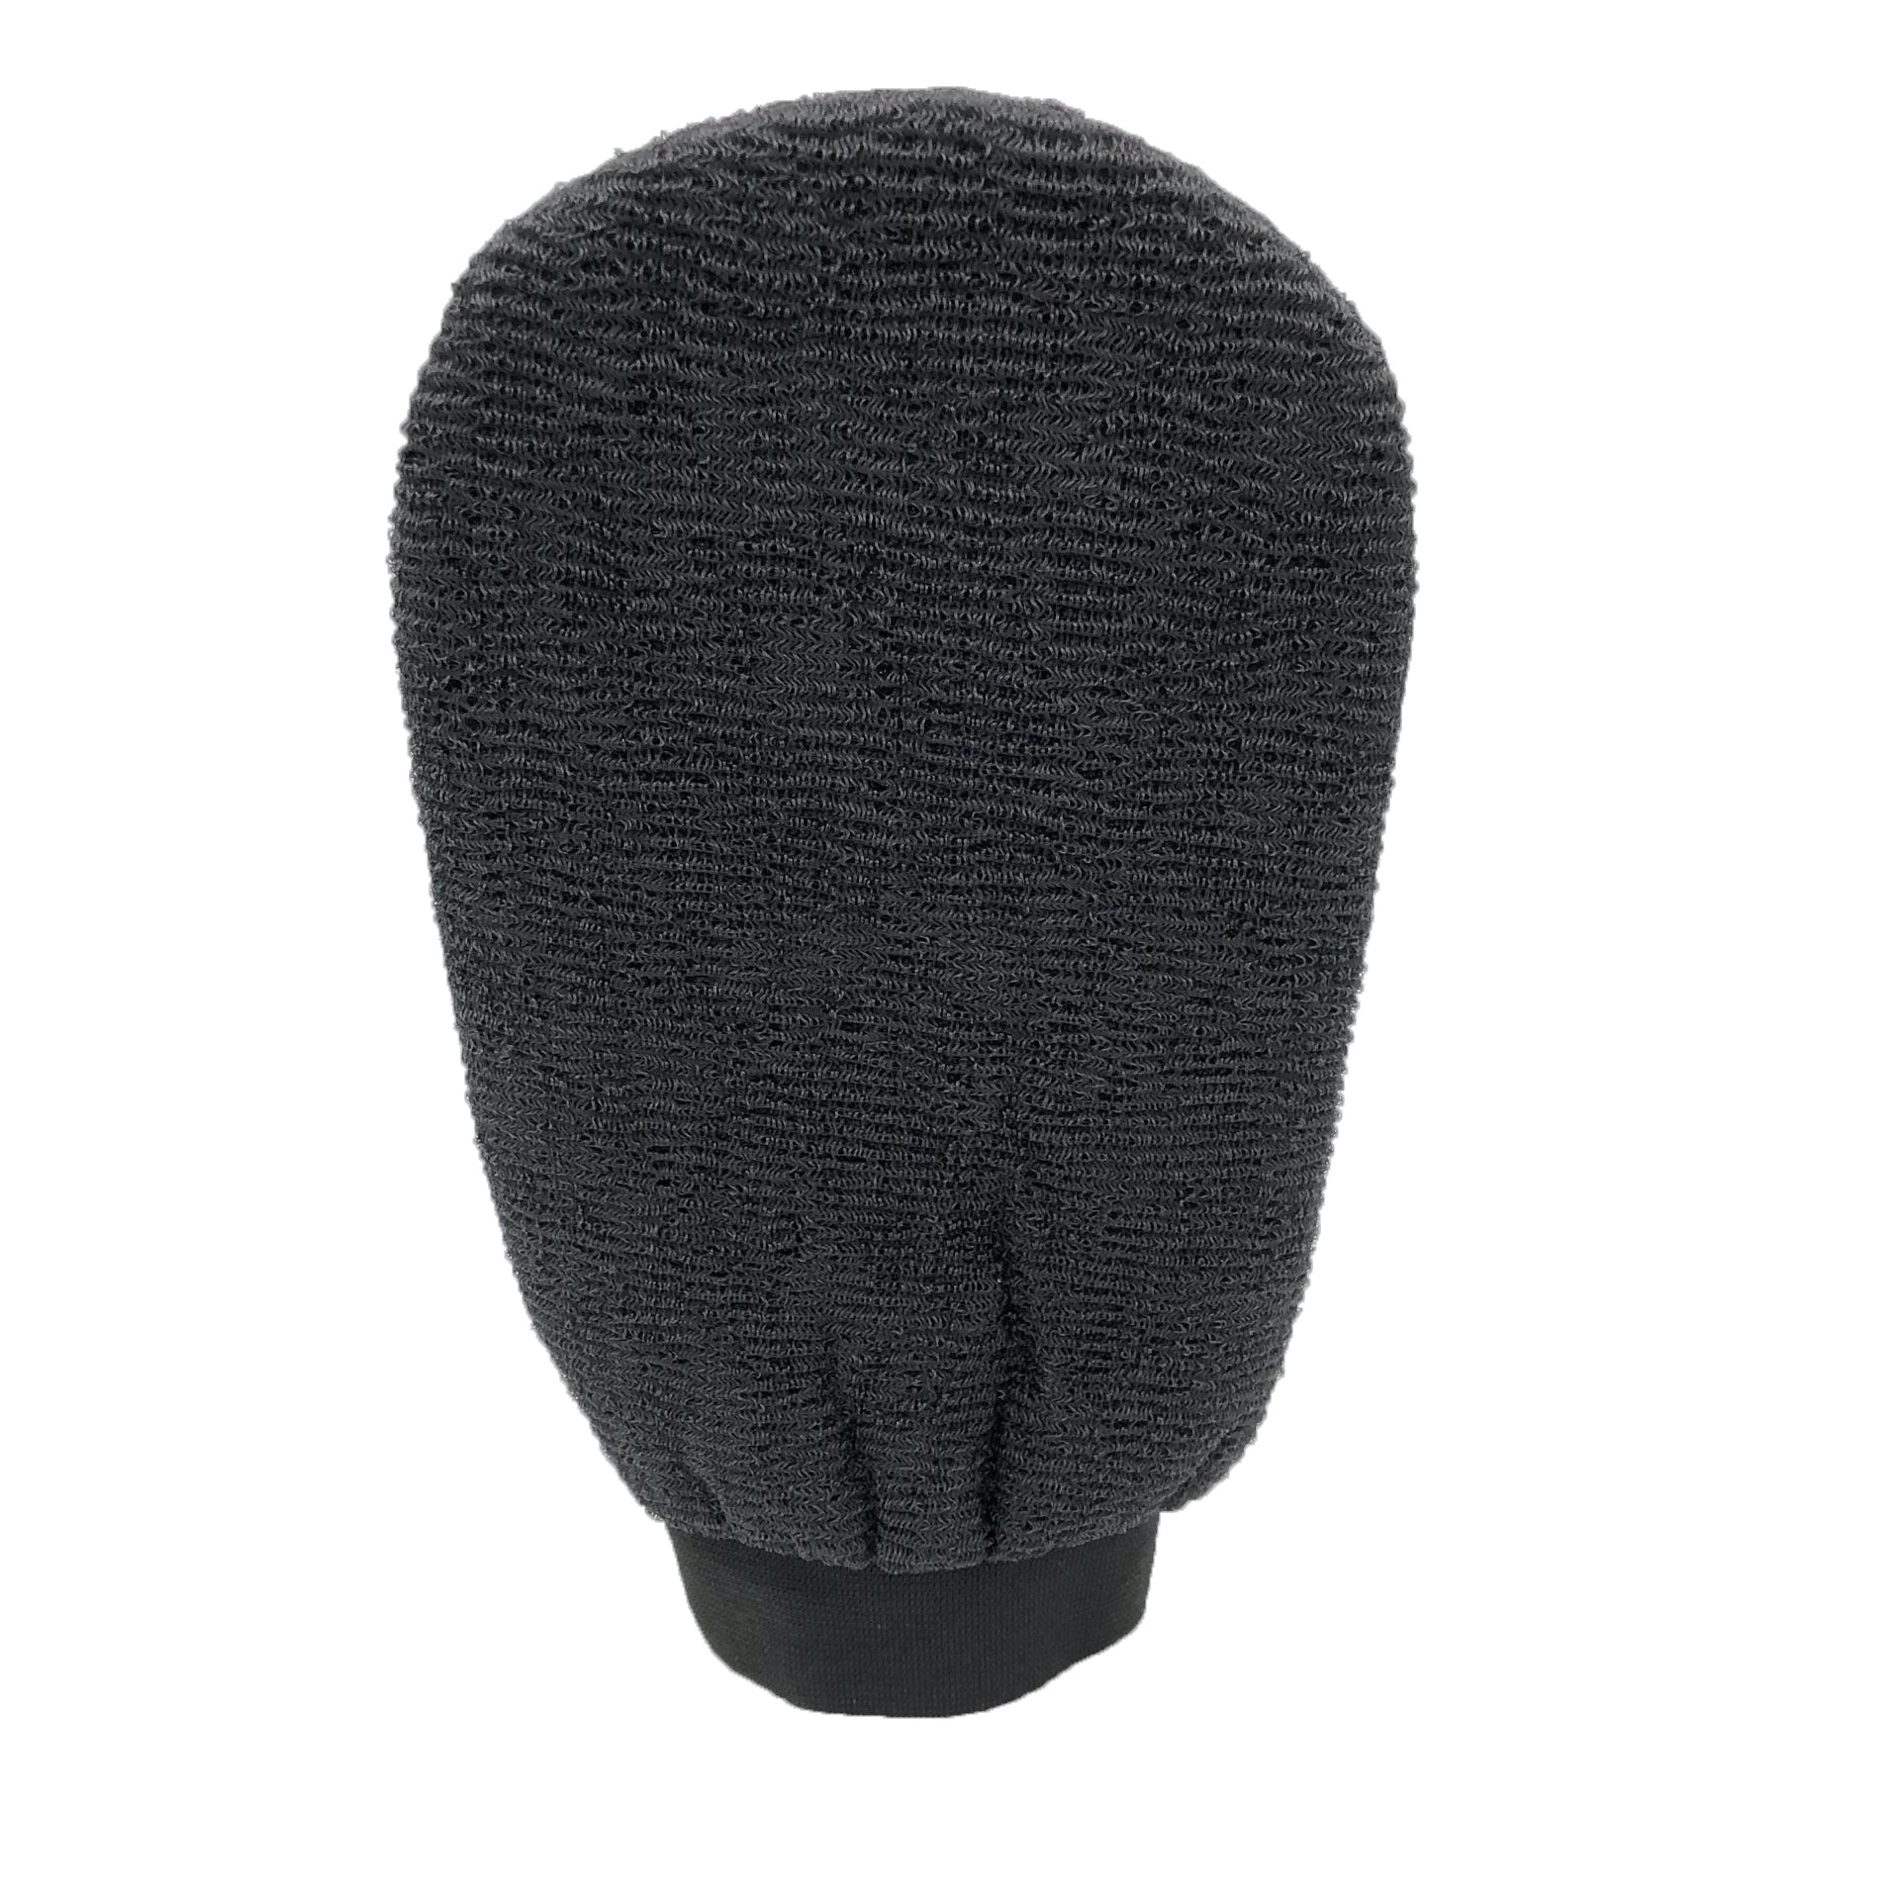 Body Shower Exfoliating Mitts Manufacturers, Body Shower Exfoliating Mitts Factory, Supply Body Shower Exfoliating Mitts